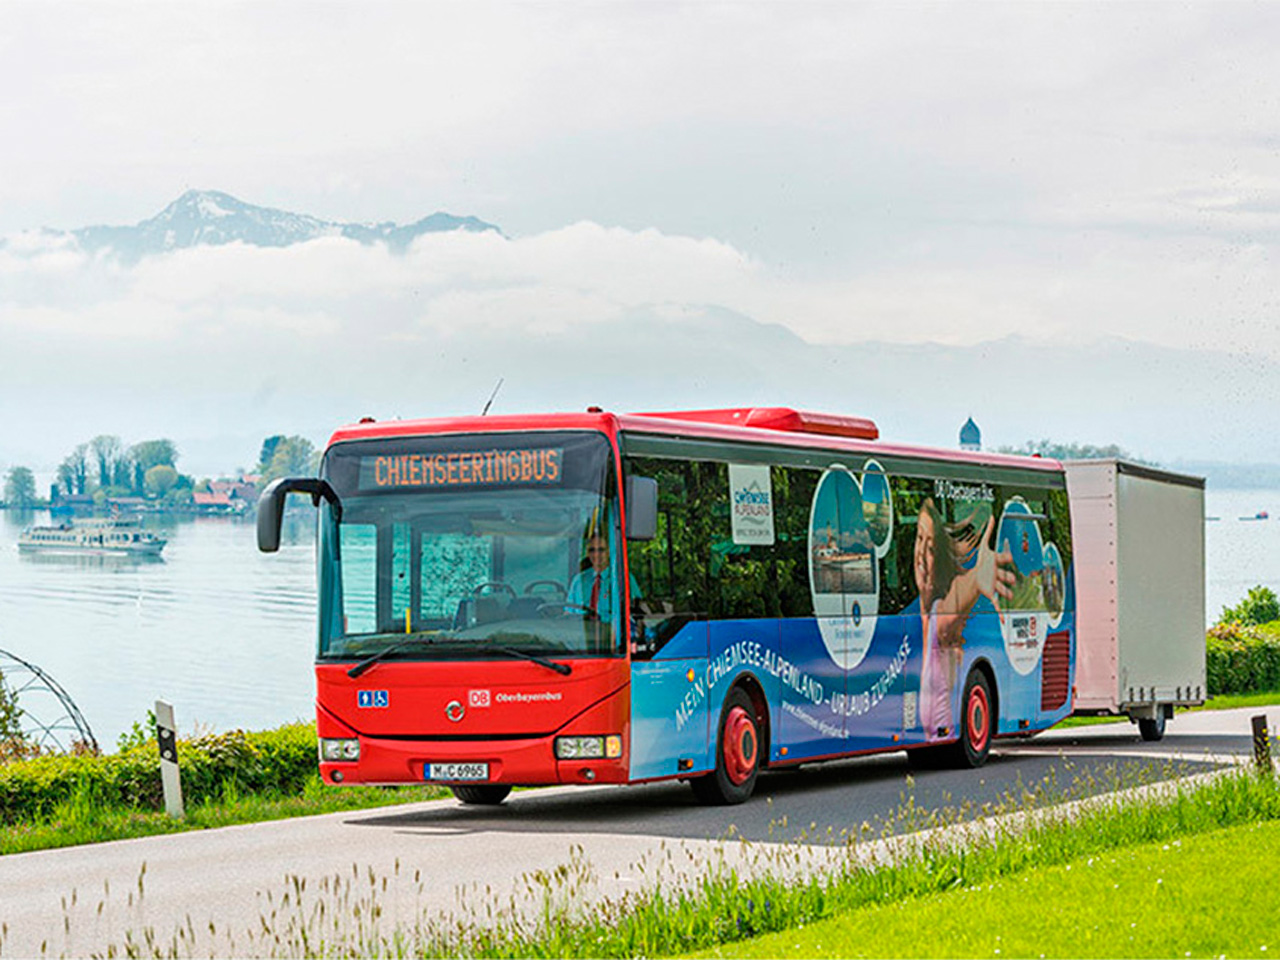 The Chiemsee Ring Bus offers the possibility to take bicycles (Source: www.chiemsee-alpenland.de)